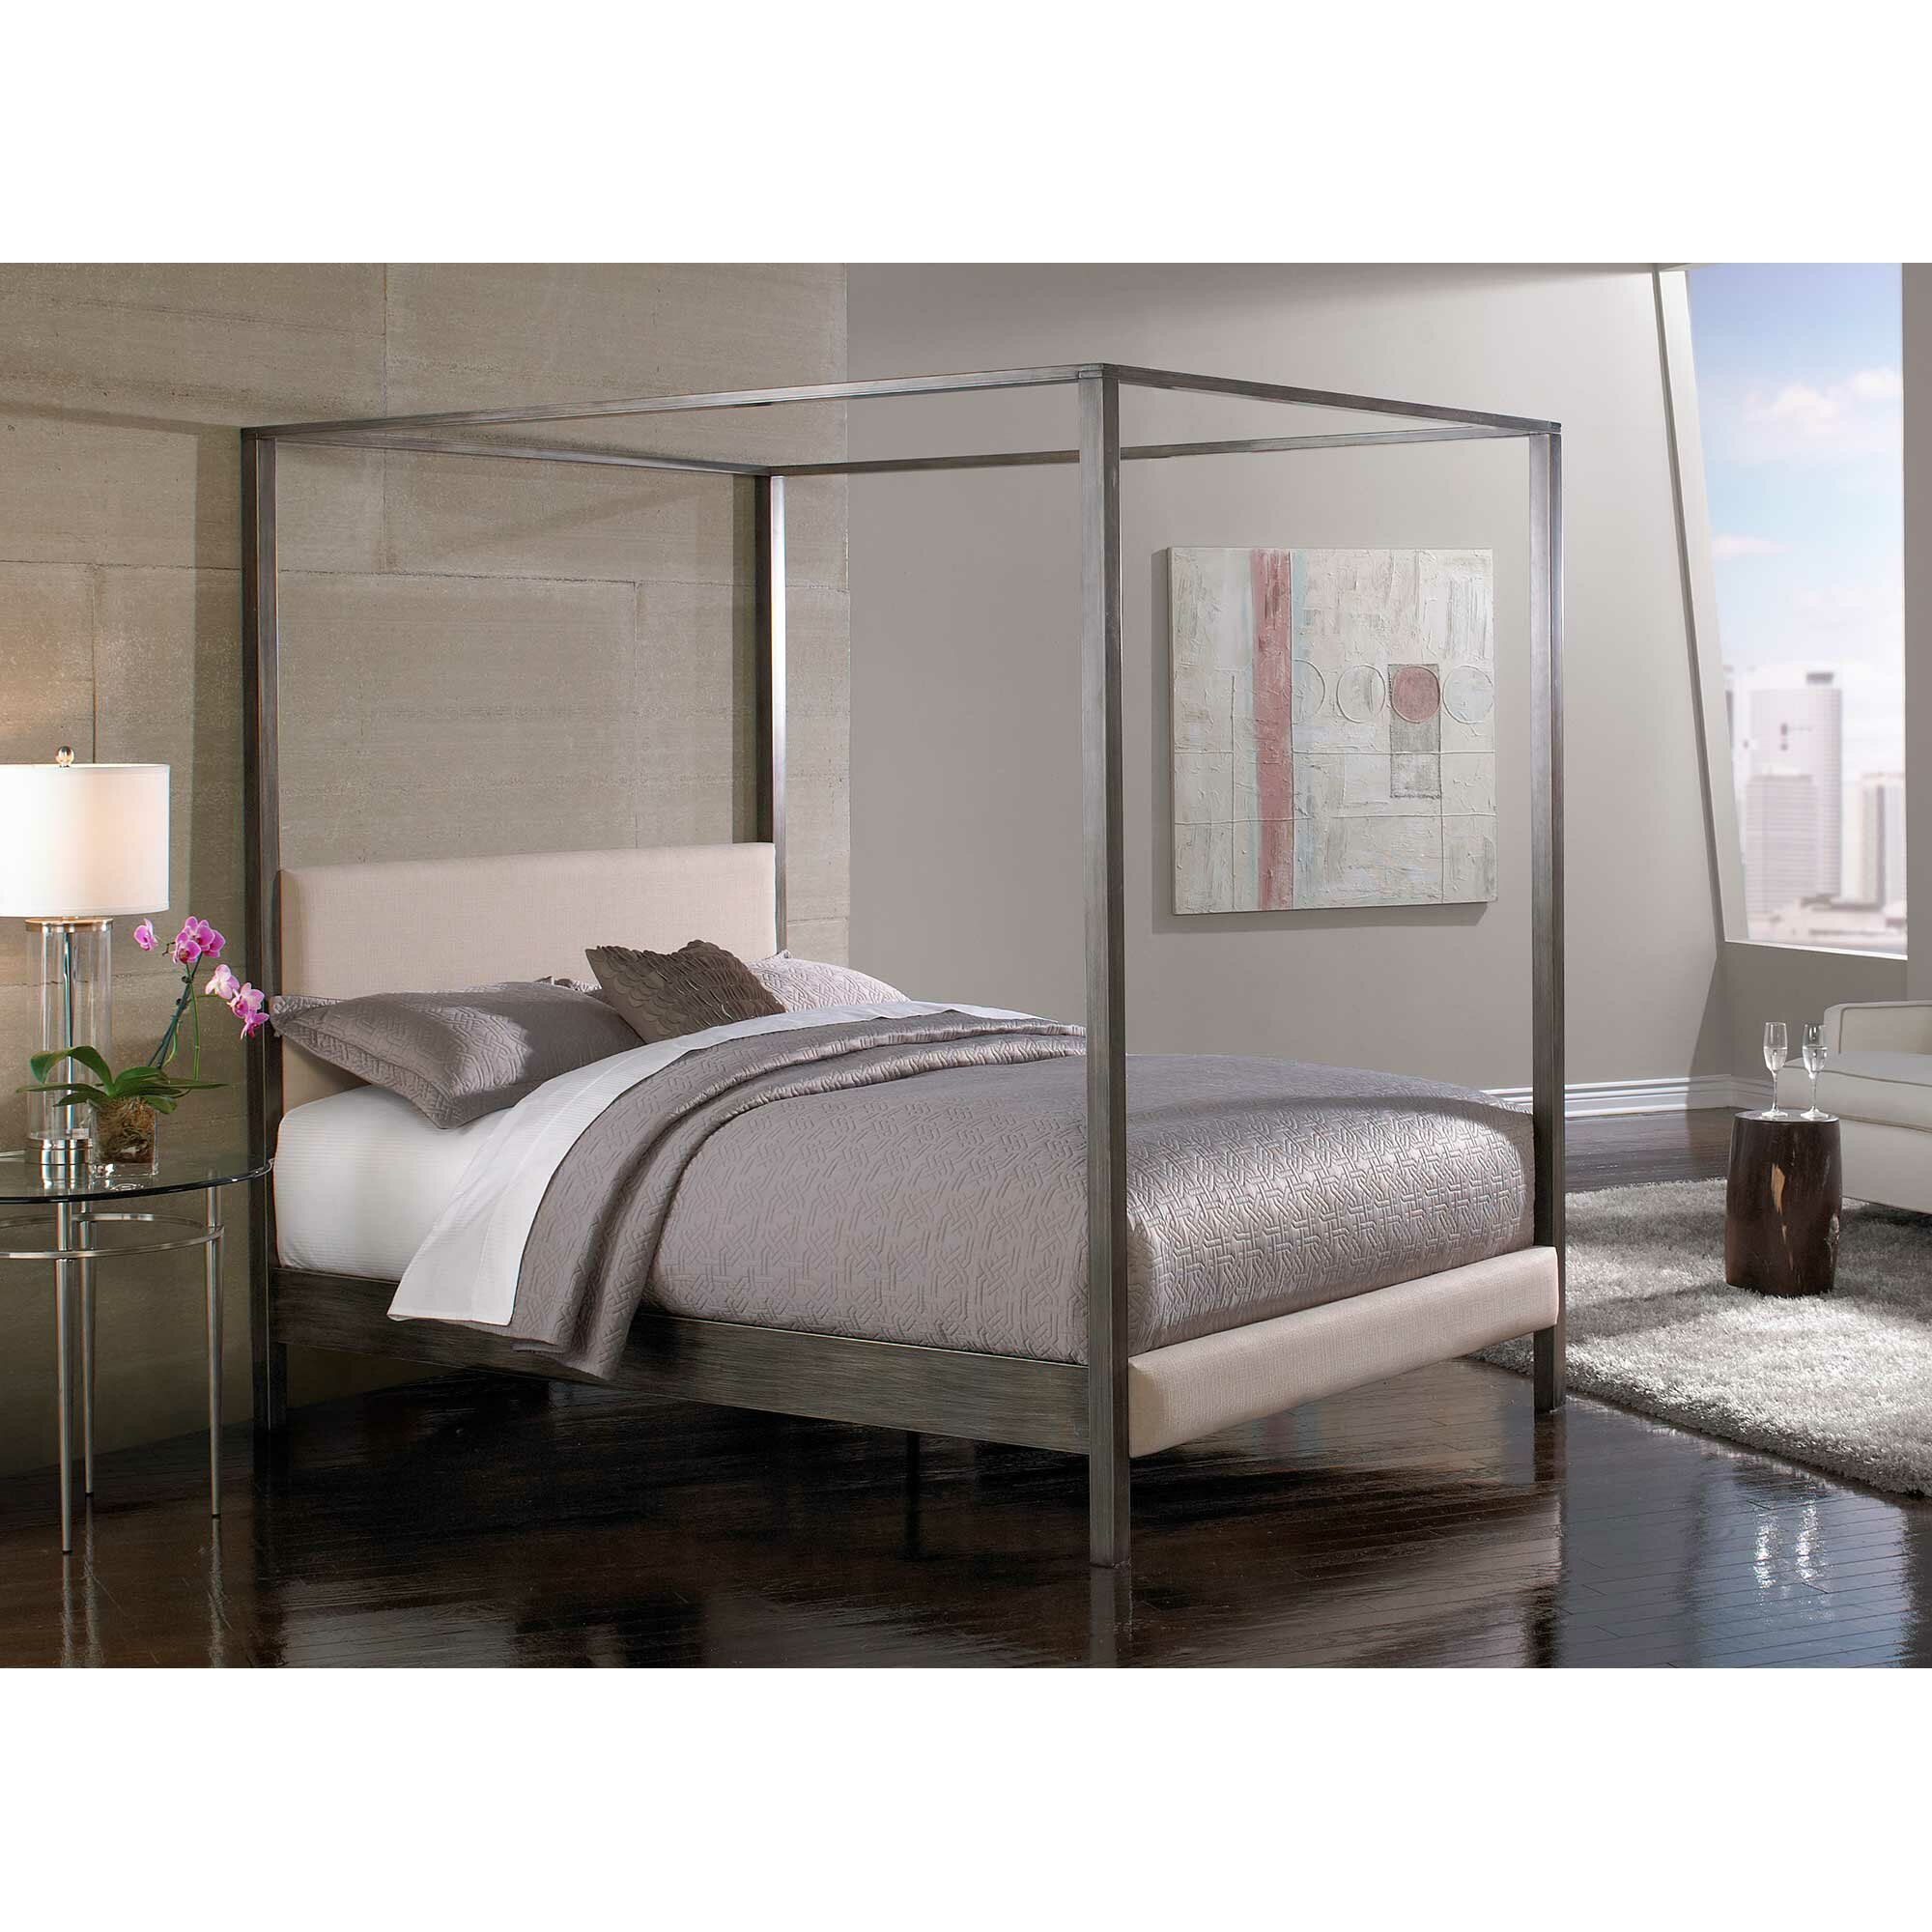 Canopy Beds You'll Love | Wayfair - Vurste Upholstered Canopy Bed